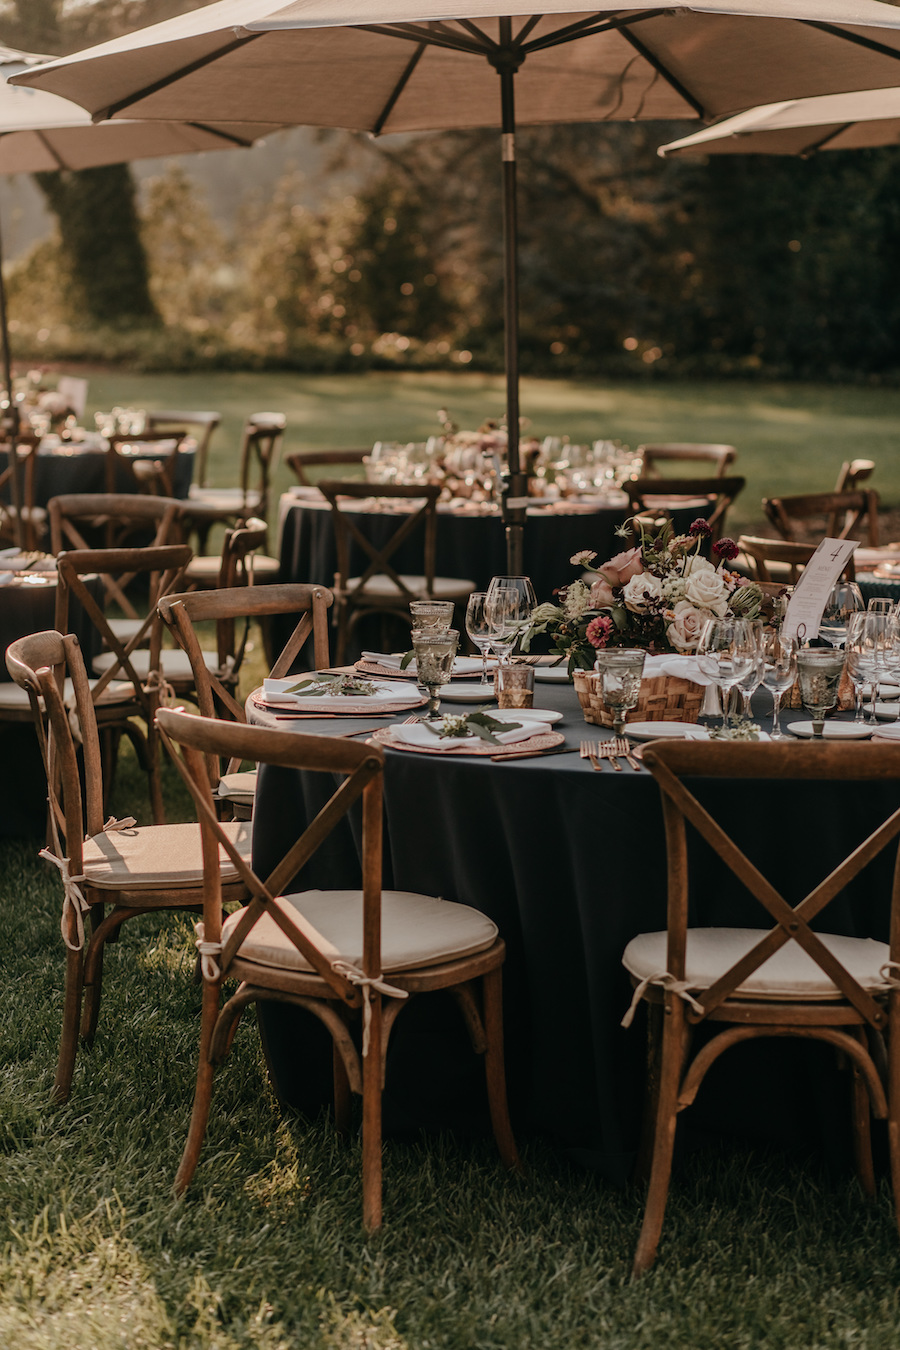 Jennifer and Jared's Chic Copper-Toned Wedding at Chateau St. Jean14.jpg